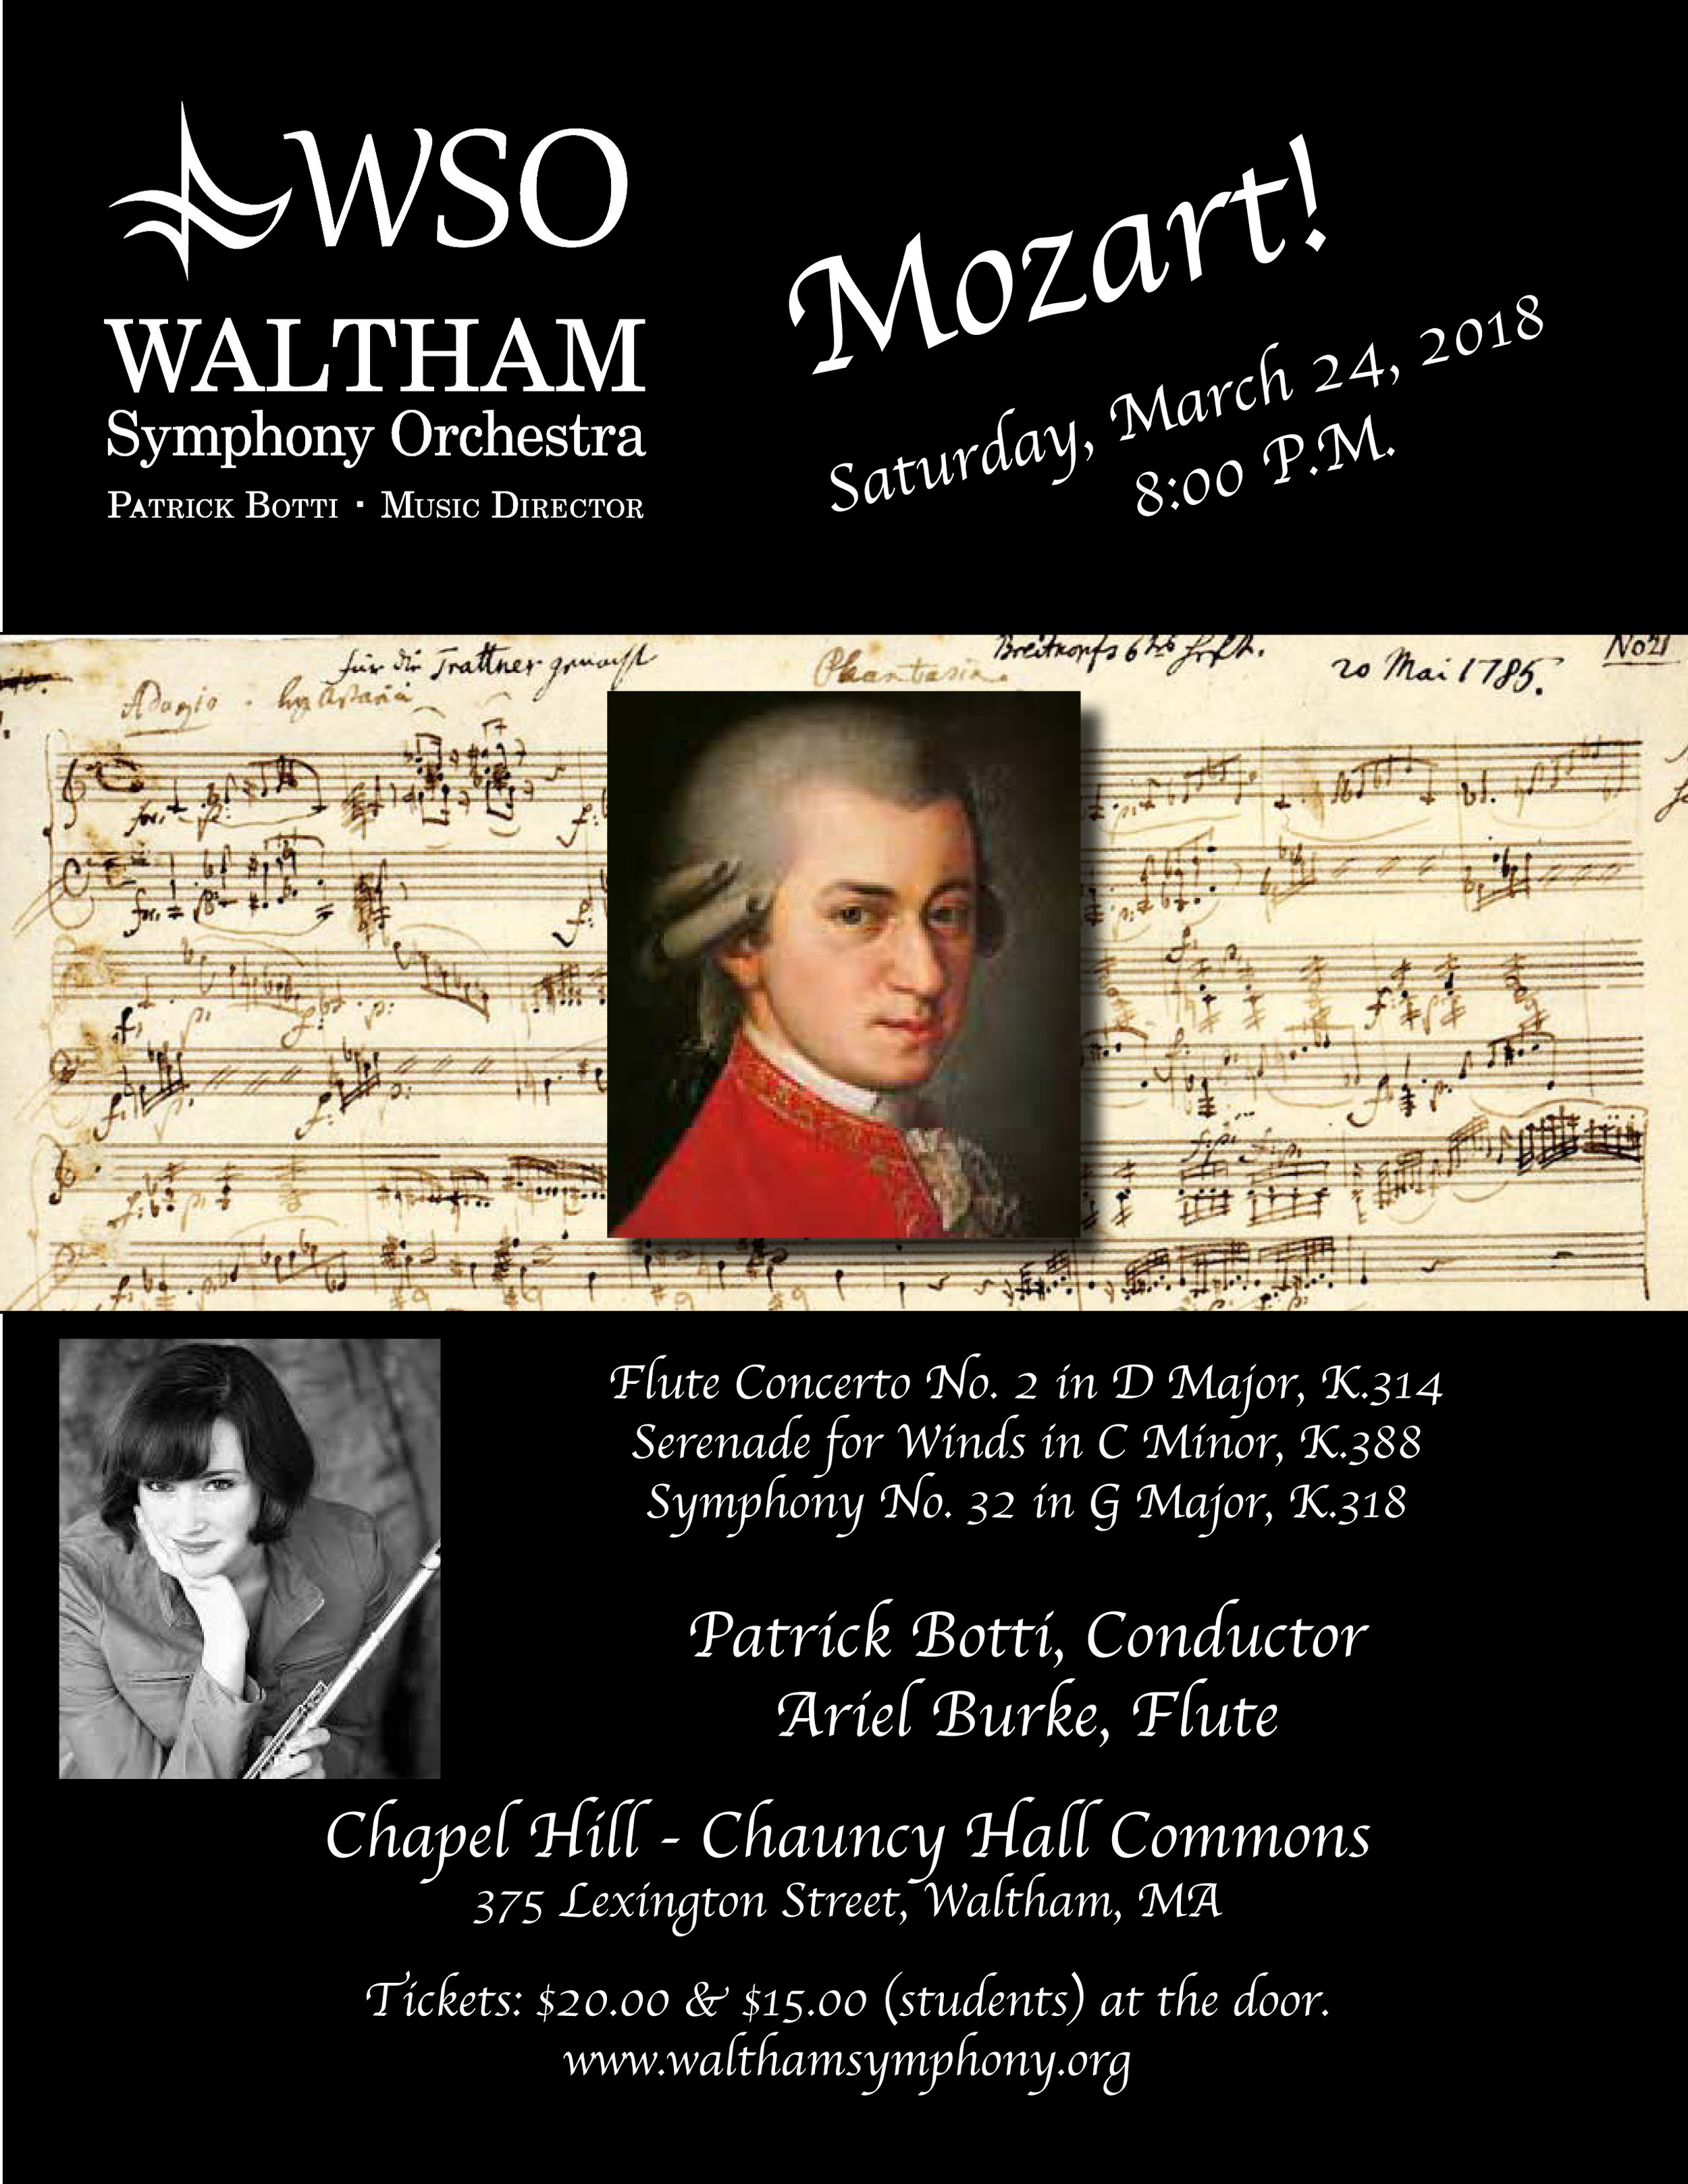 The WSO will perform music by Mozart under the baton of WSO Music Director Patrick Botti. Featuring WSO principal flutist, Arielle Burke.